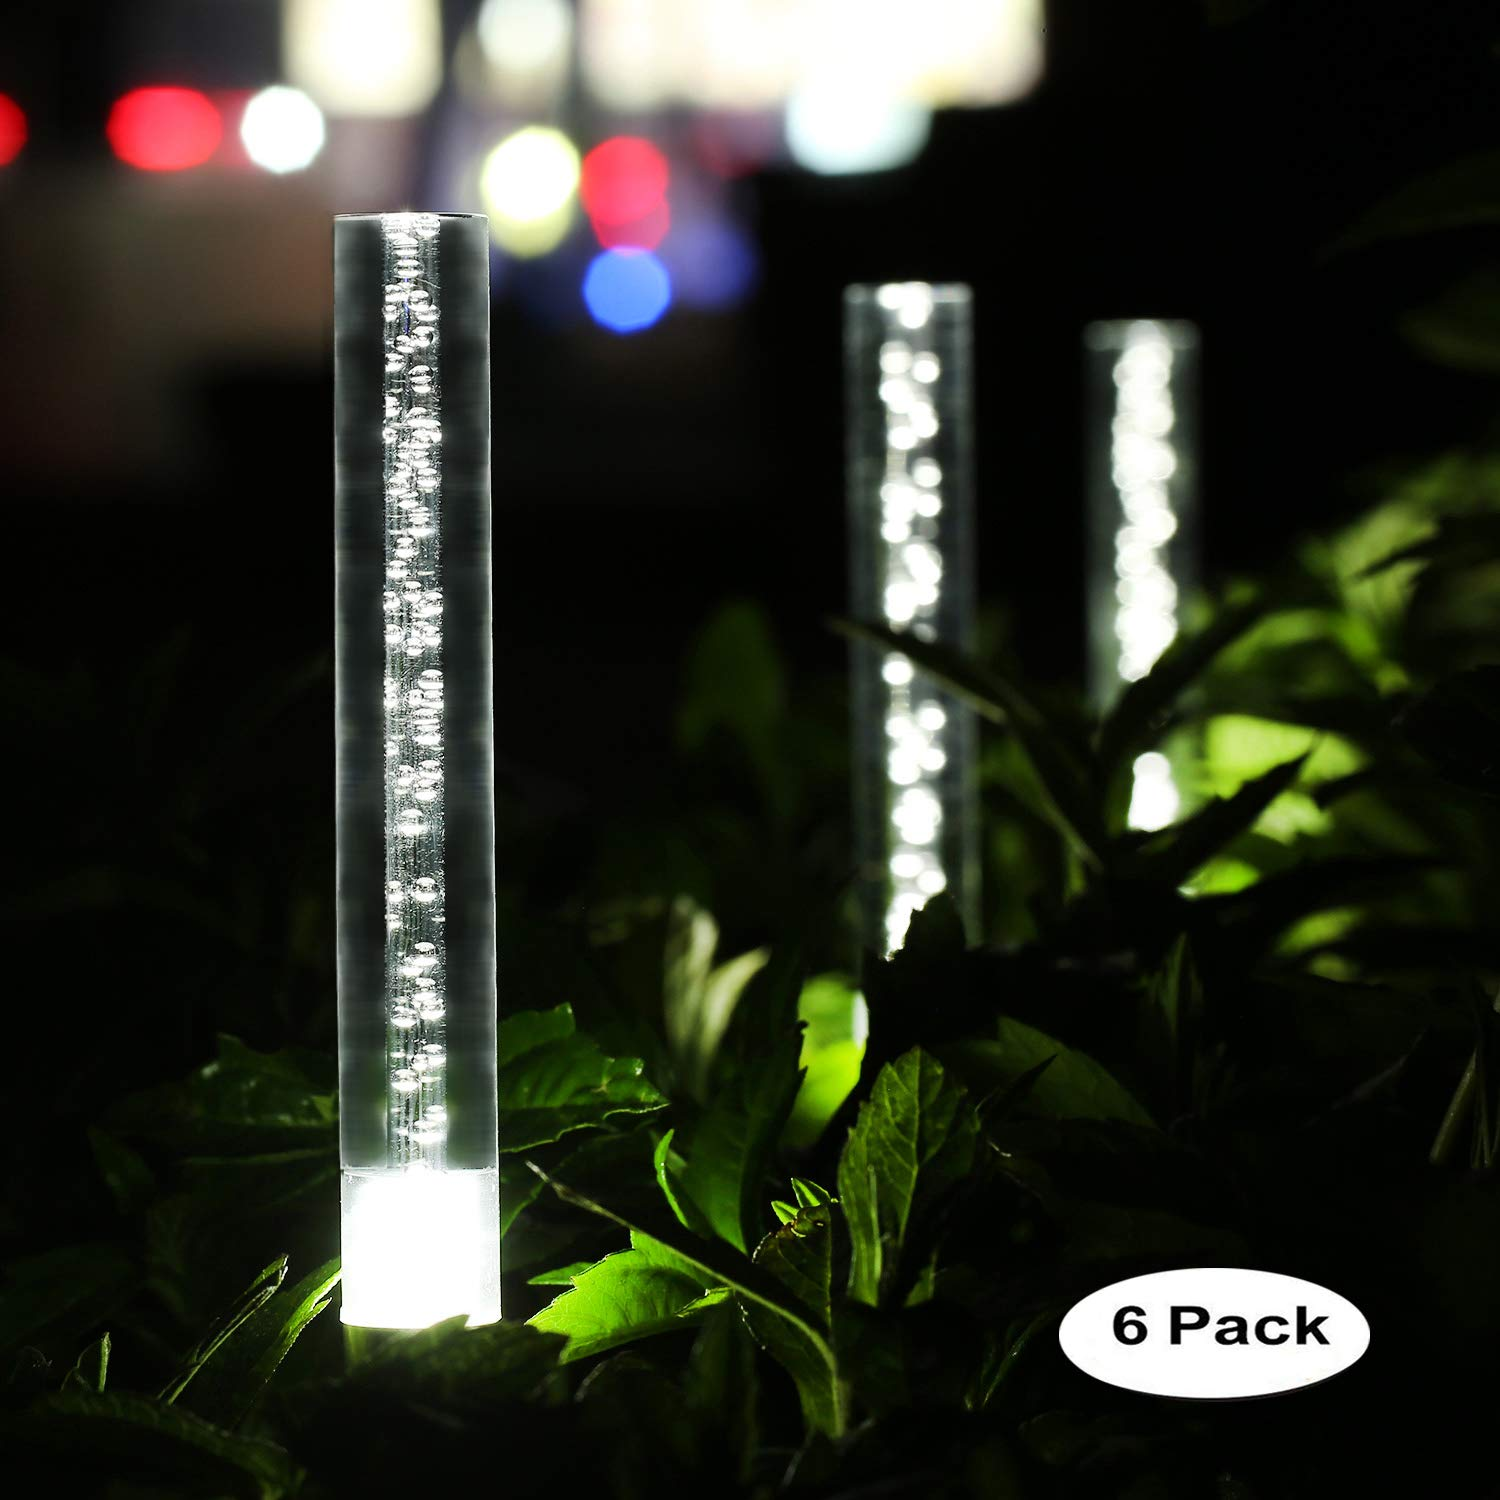 Sunwind Solar Garden Tube Lights String Bright White Solar Powered Crystal Bubble Pathway Stick Lights Set of 6 Garden Path Lights Stakes for Patio Walkway Lawn Fence Garden Decor (Bright White)